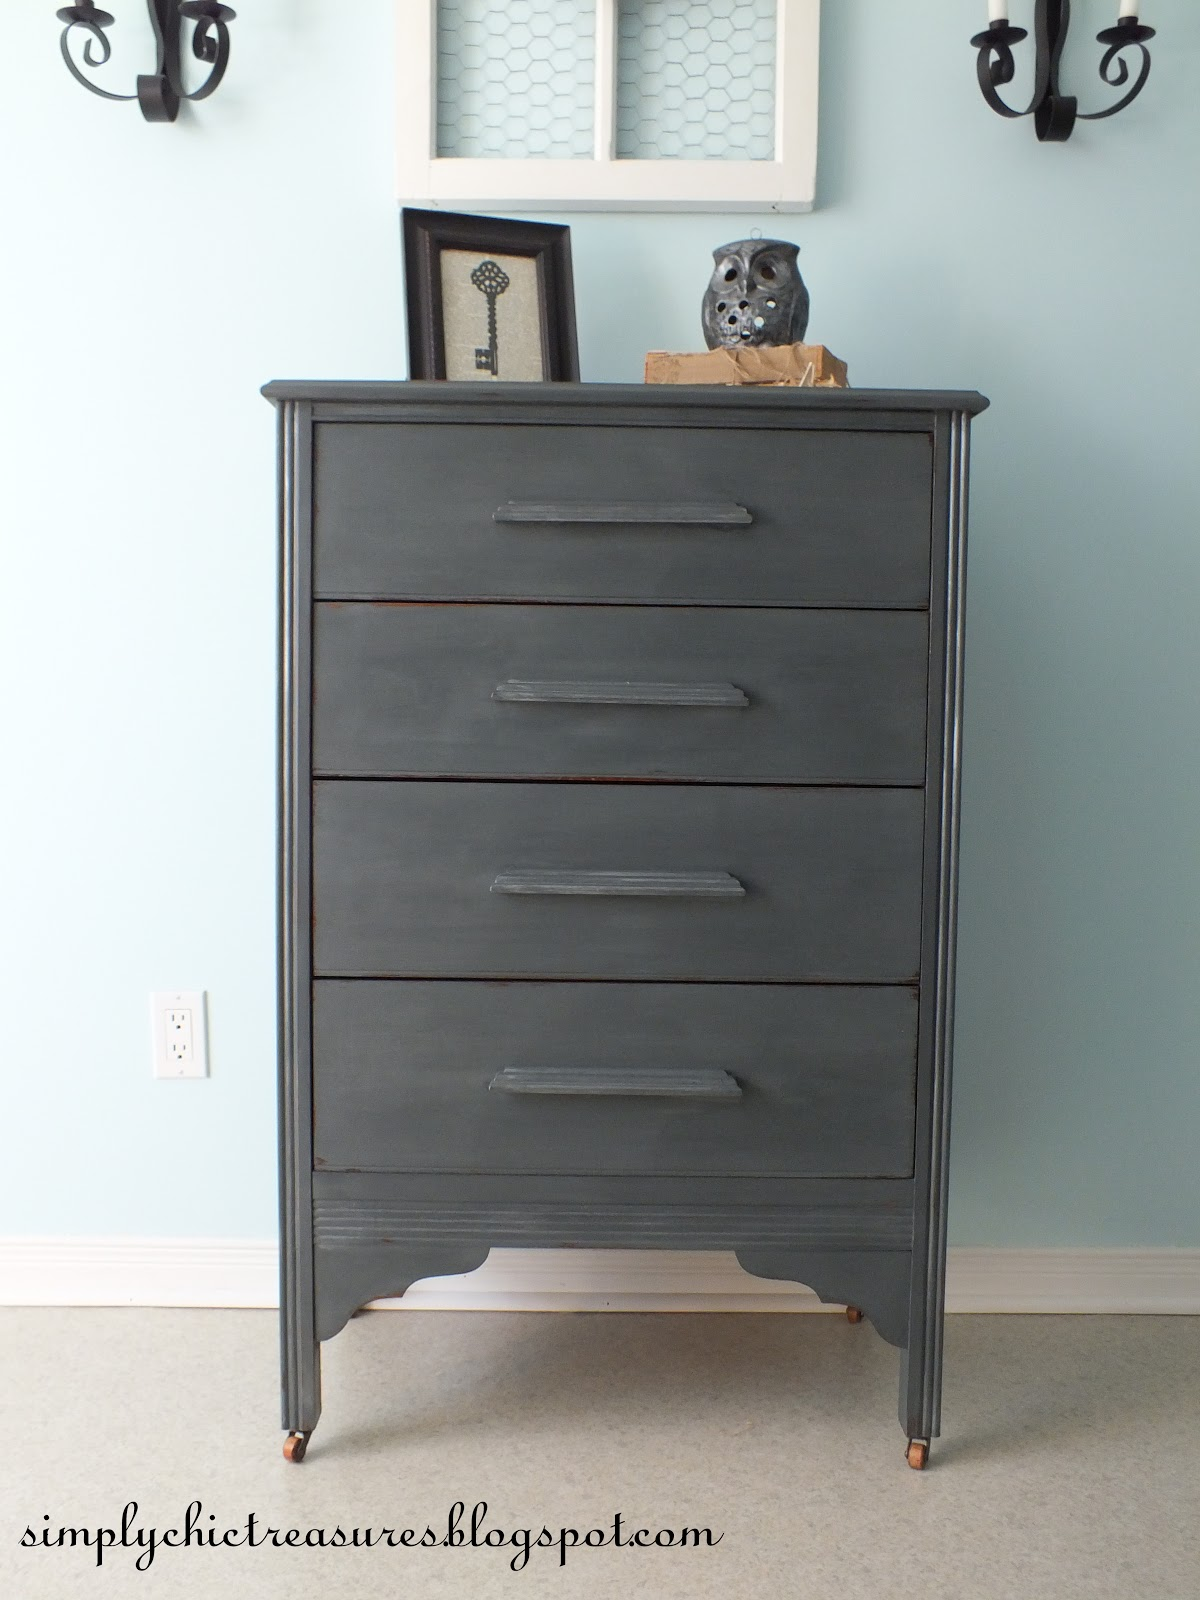 Simply chic treasures dresser makeover in vermont slate for Vermont slate colors